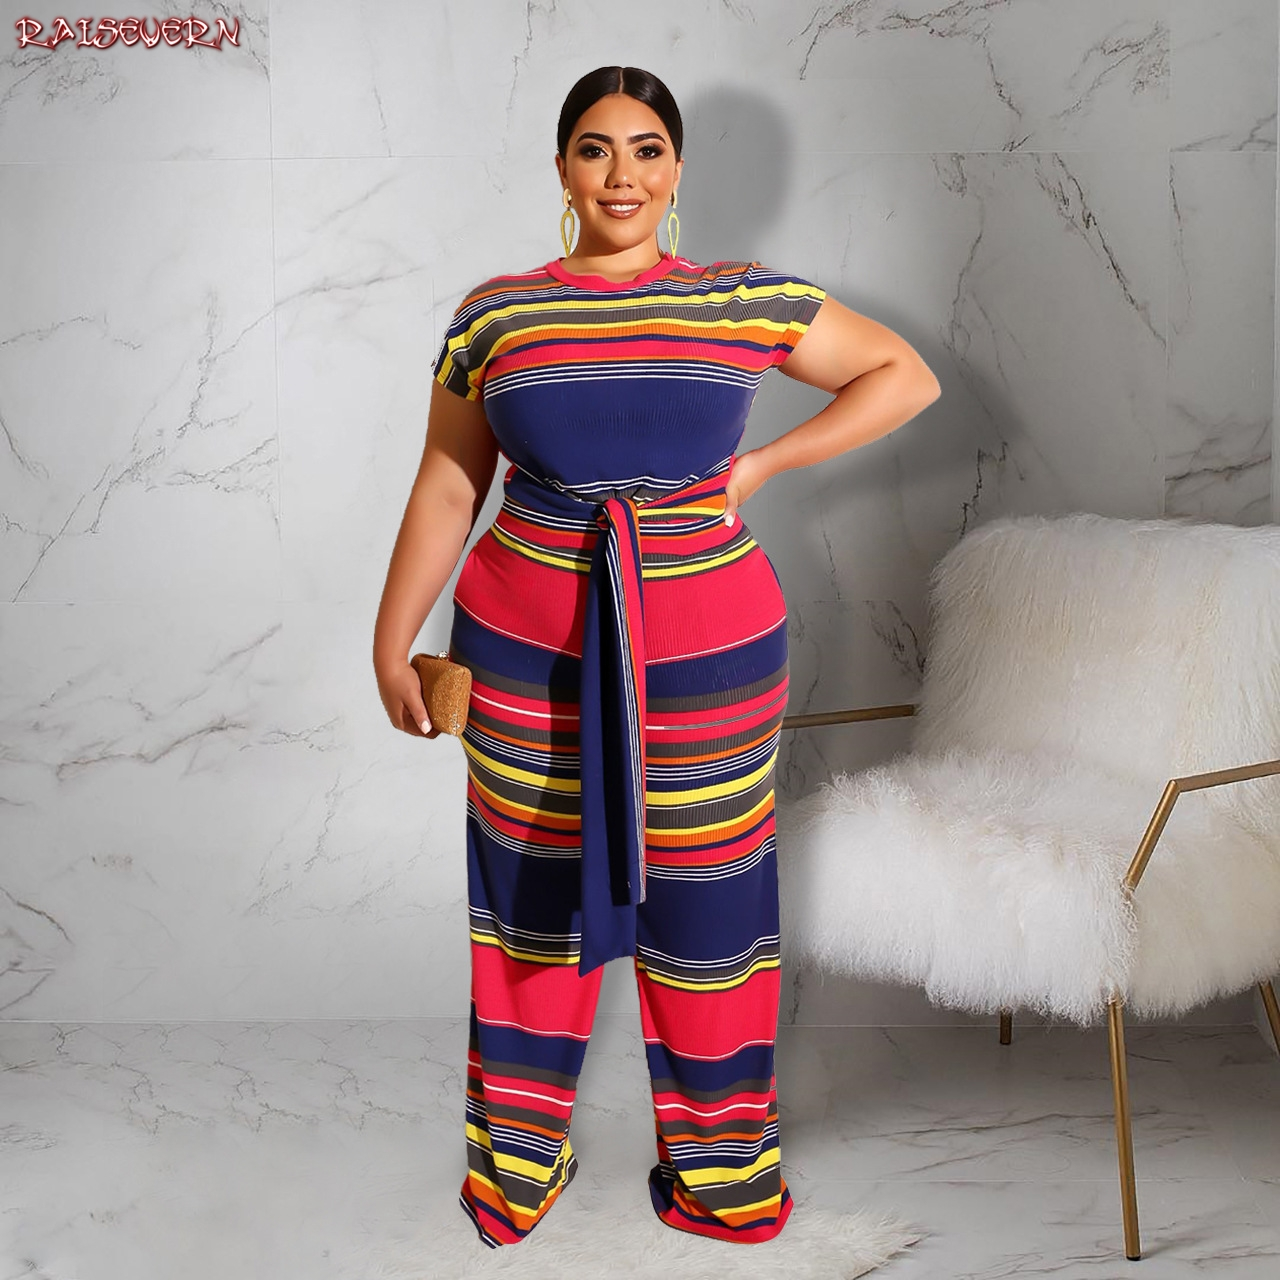 RAISEVERN 2019 Women Plus Size Clothing Casual Black Wrap Patchwork Rompers Cool Waist Tie Holiday Wide Leg   Jumpsuits